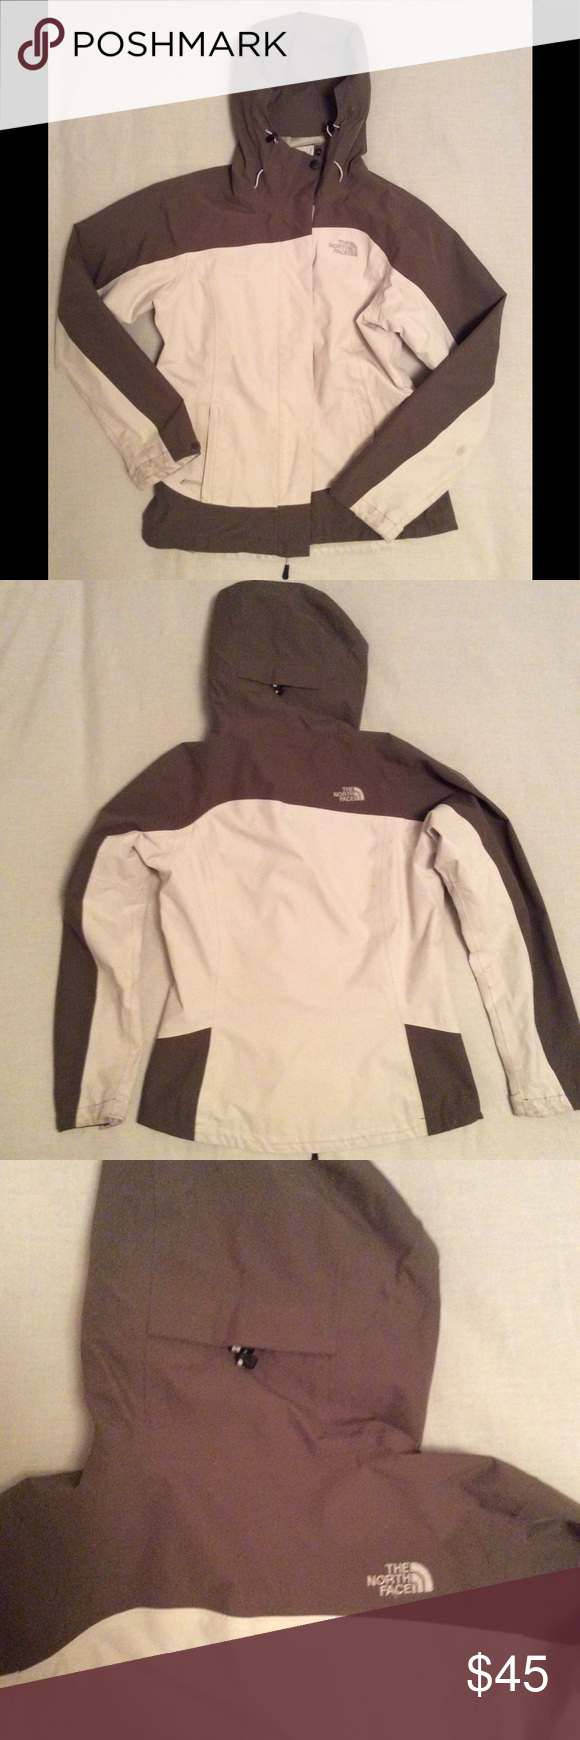 North Face Women S Jacket Xs North Face Jacket Light Weight Cream And Brown Used But In Good Con North Face Women North Face Jacket Womens North Face Jacket [ 1740 x 580 Pixel ]